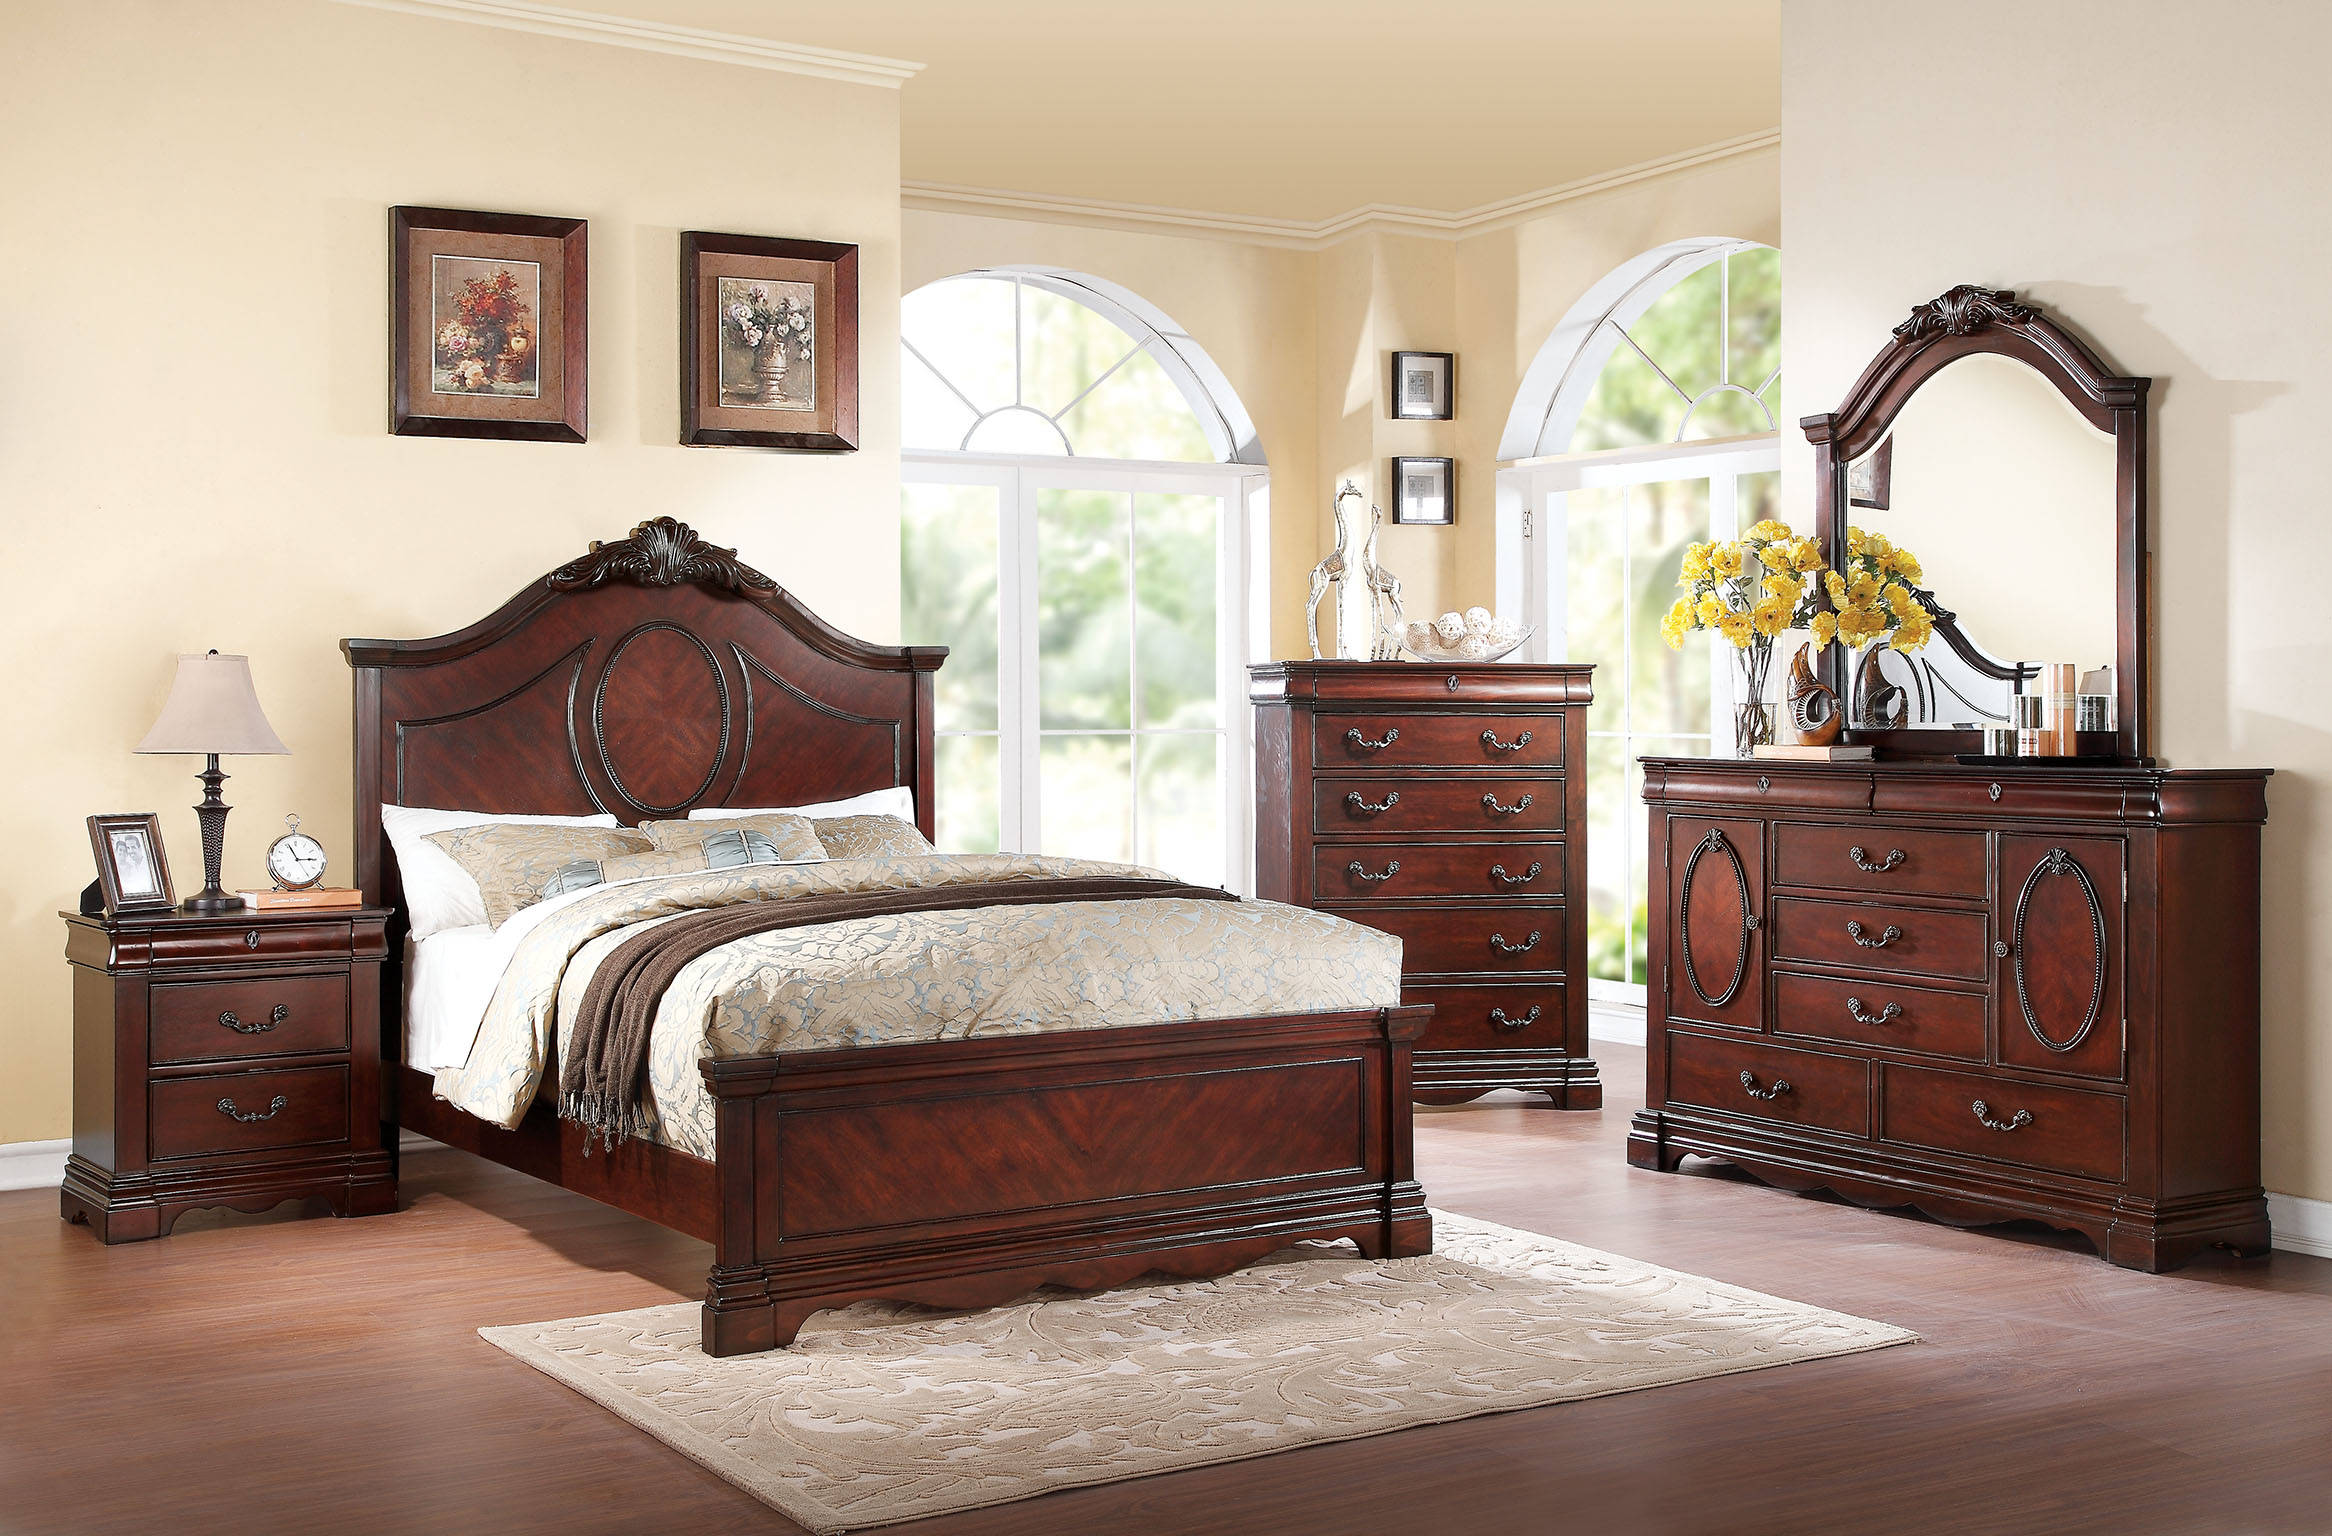 Estrella Traditional Dark Cherry Wood Master Bedroom Set Bedrooms The Classy Home Best